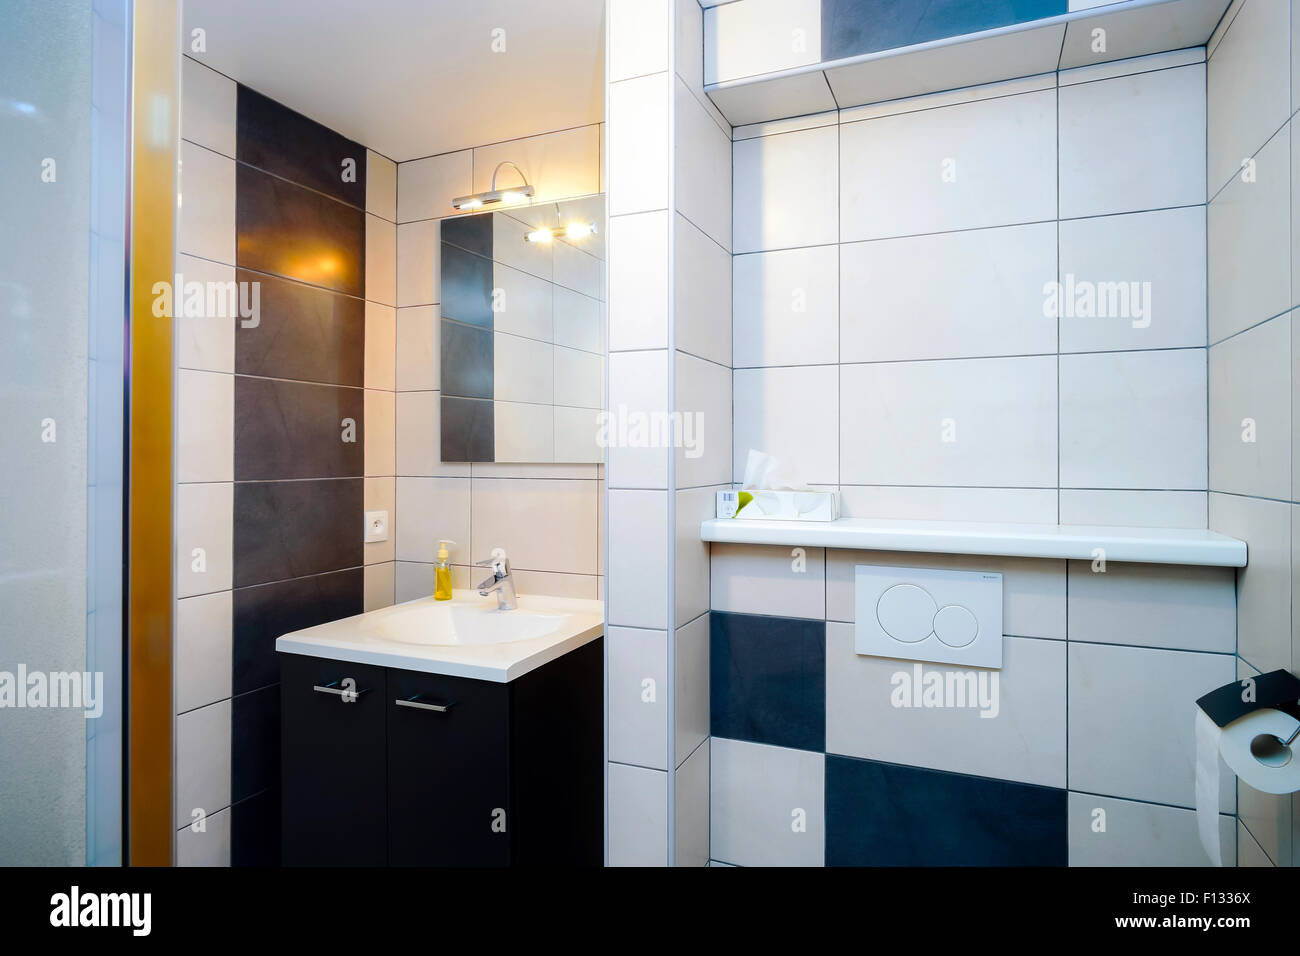 New modern wc with douche in apartment, bathroom Stock Photo ...